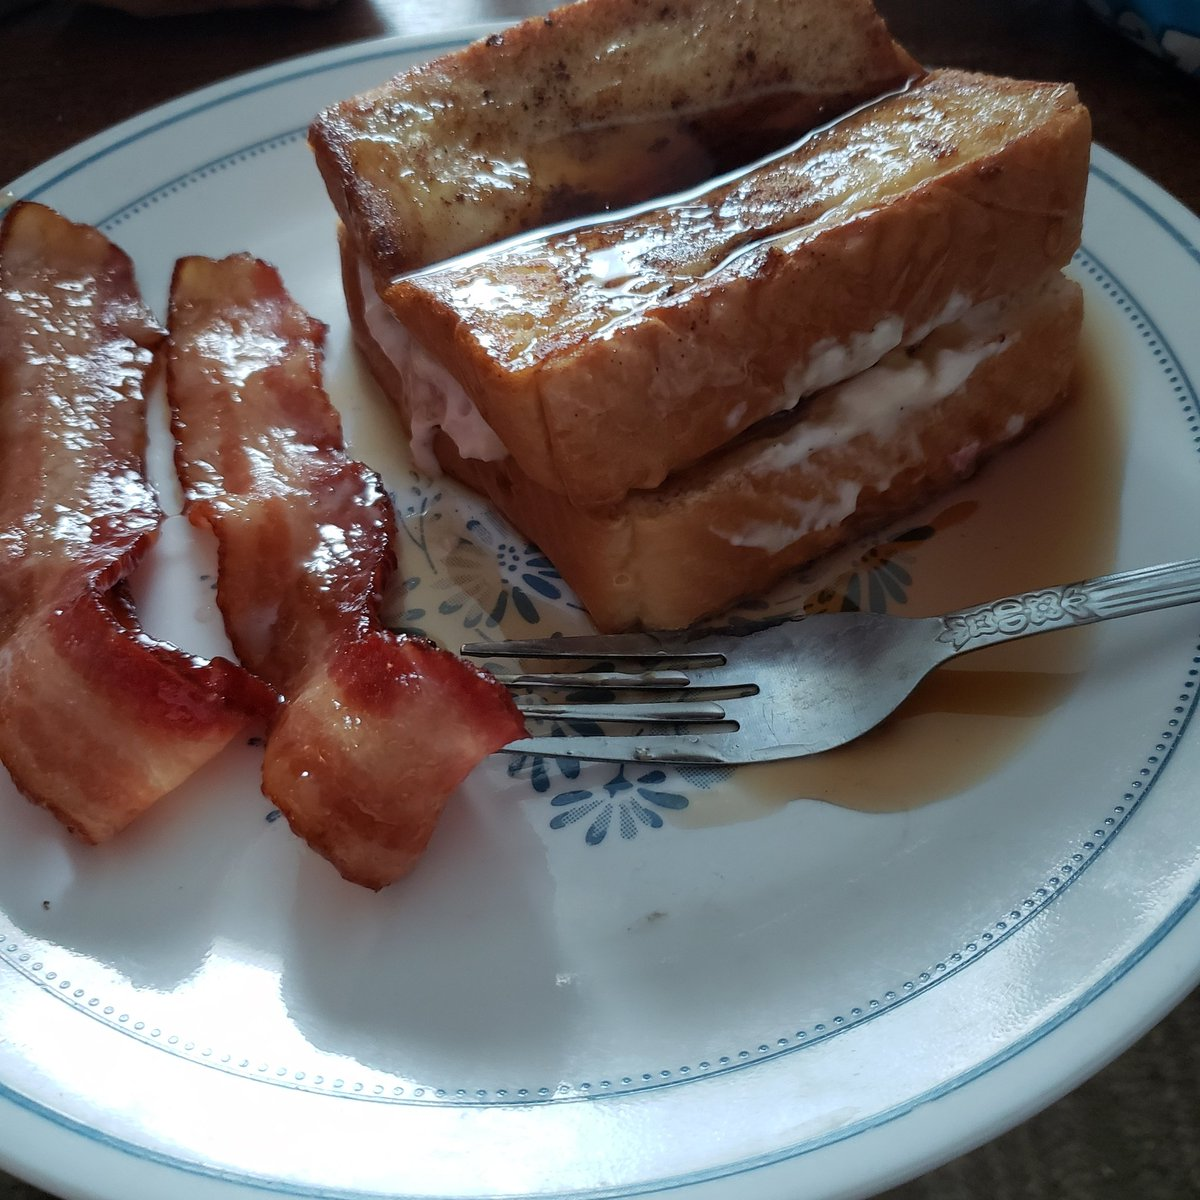 #breakfast #inlove #mouthgasam strawberry stuffed French toast and candied bacon yummy yummy https://t.co/zIu4g3hD99